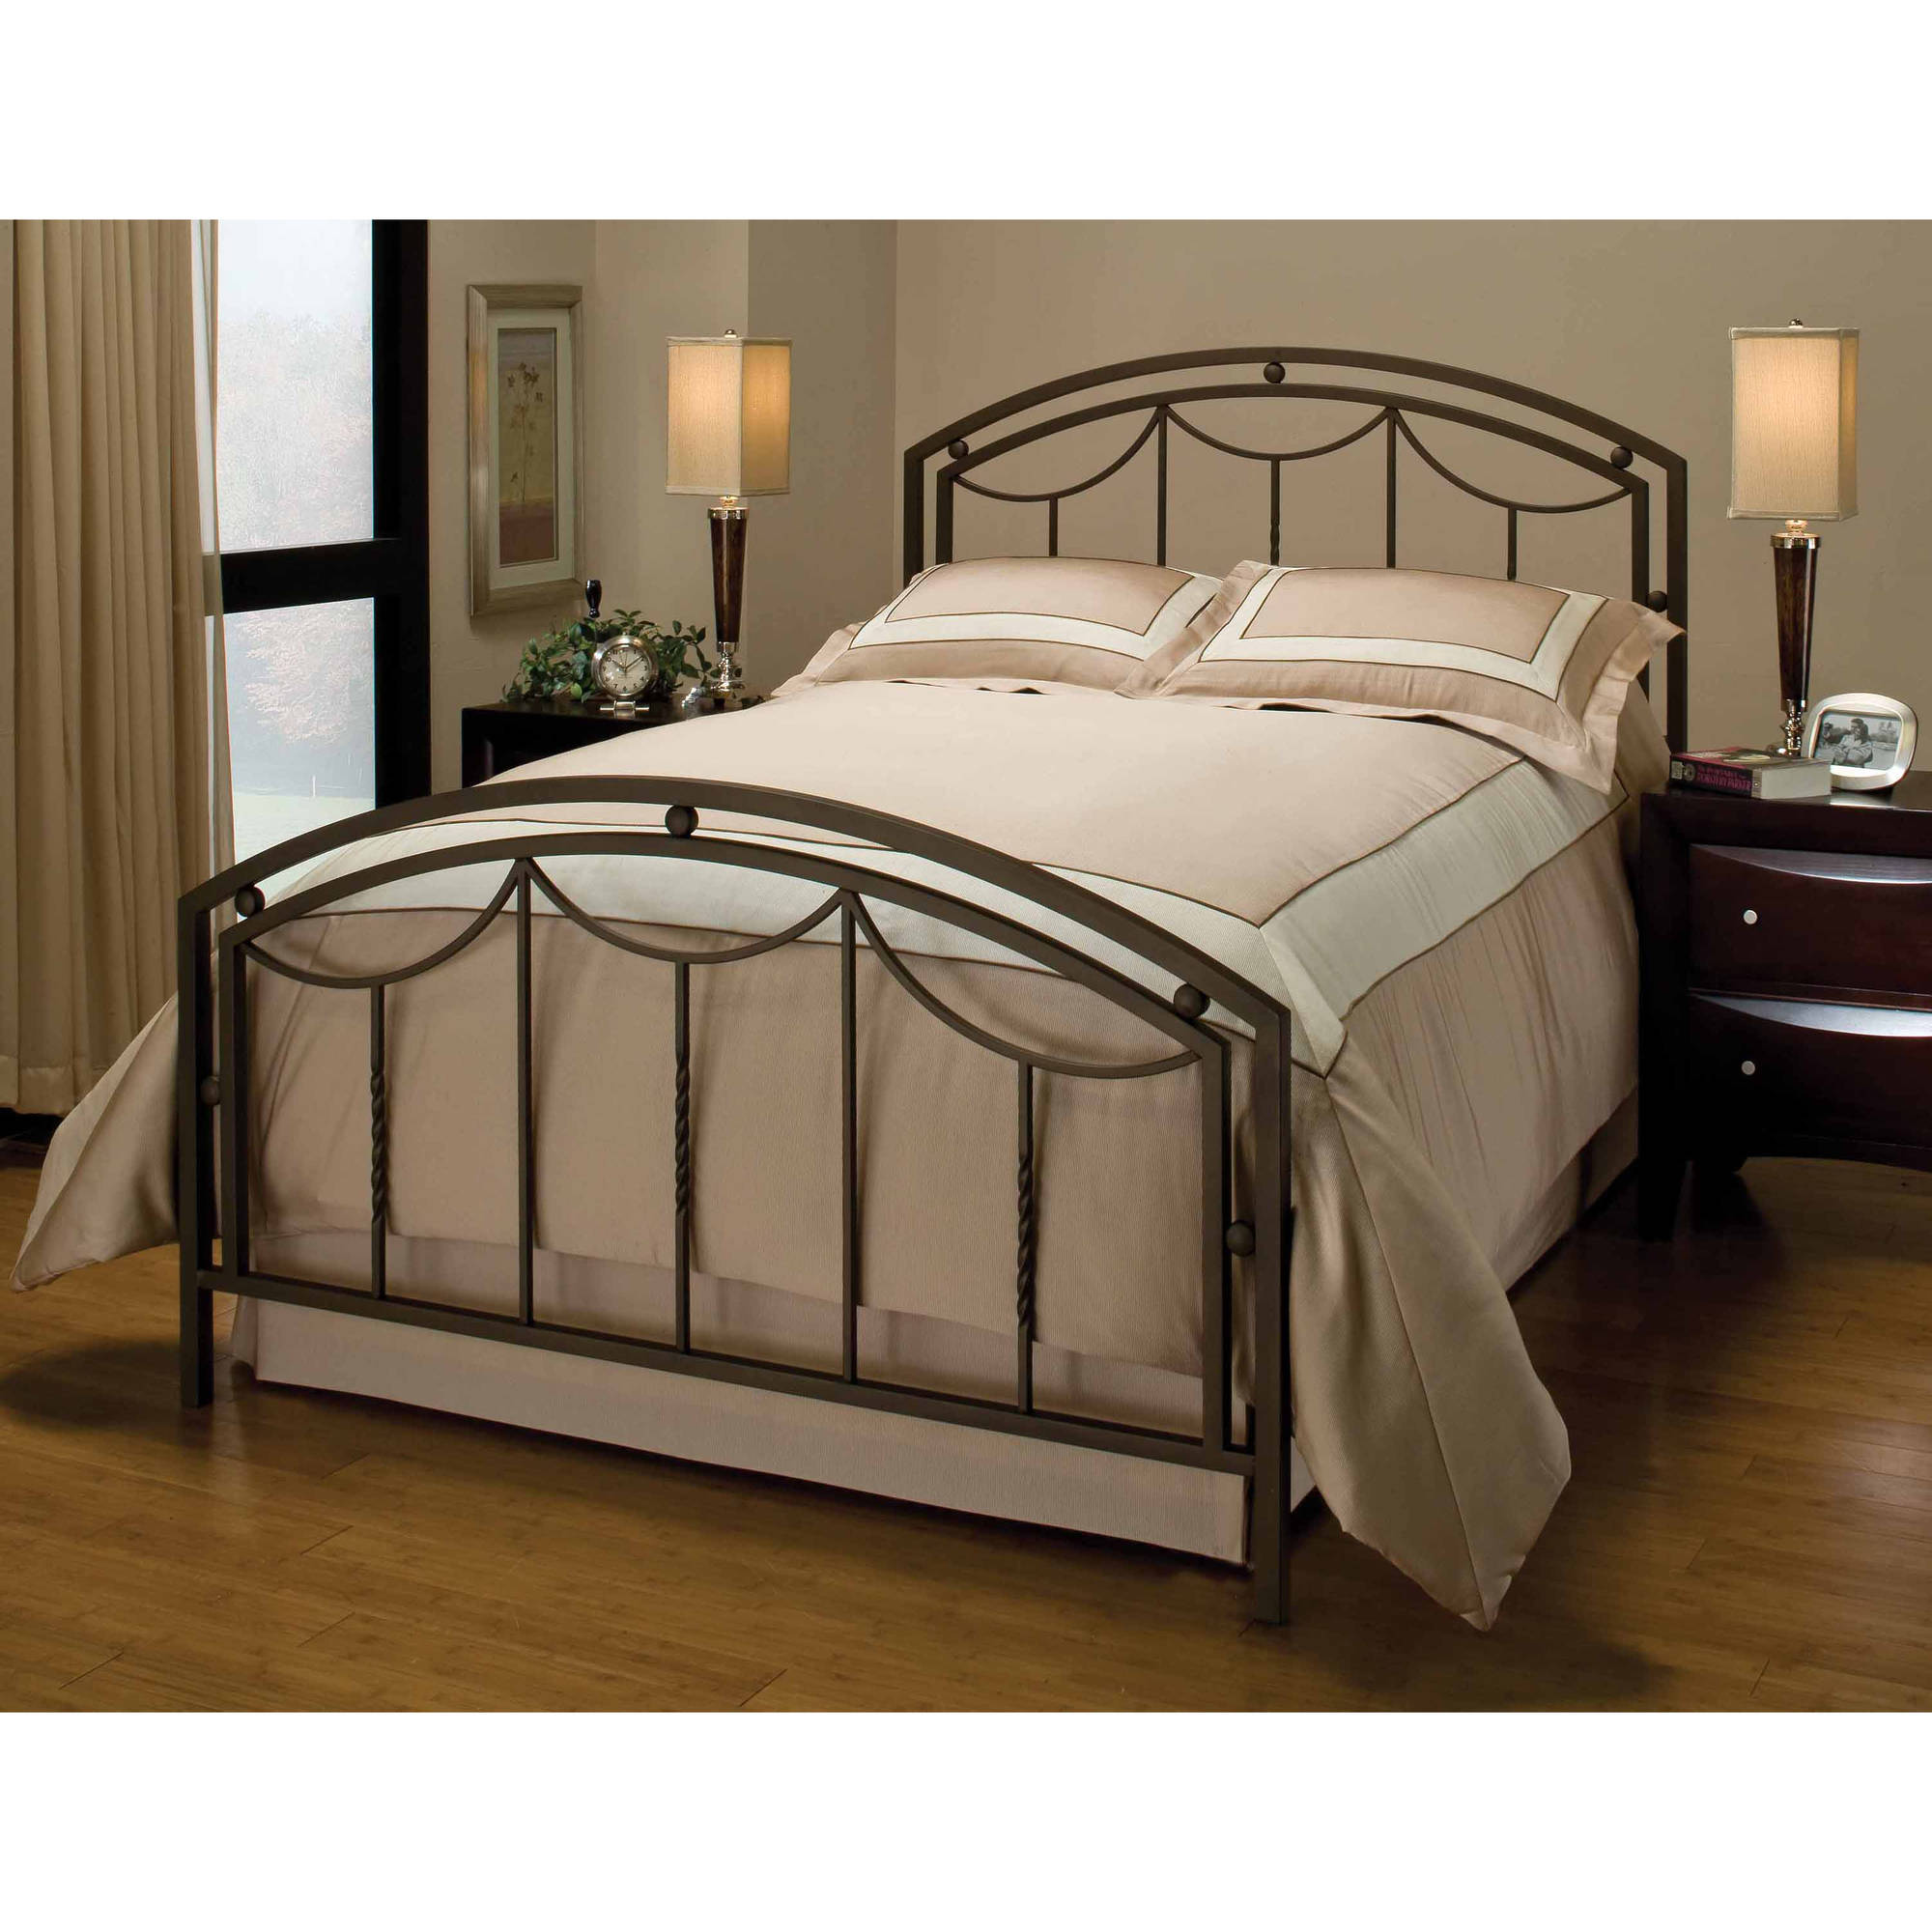 Hillsdale Furniture Arlington Bed, Multiple Sizes by Hillsdale